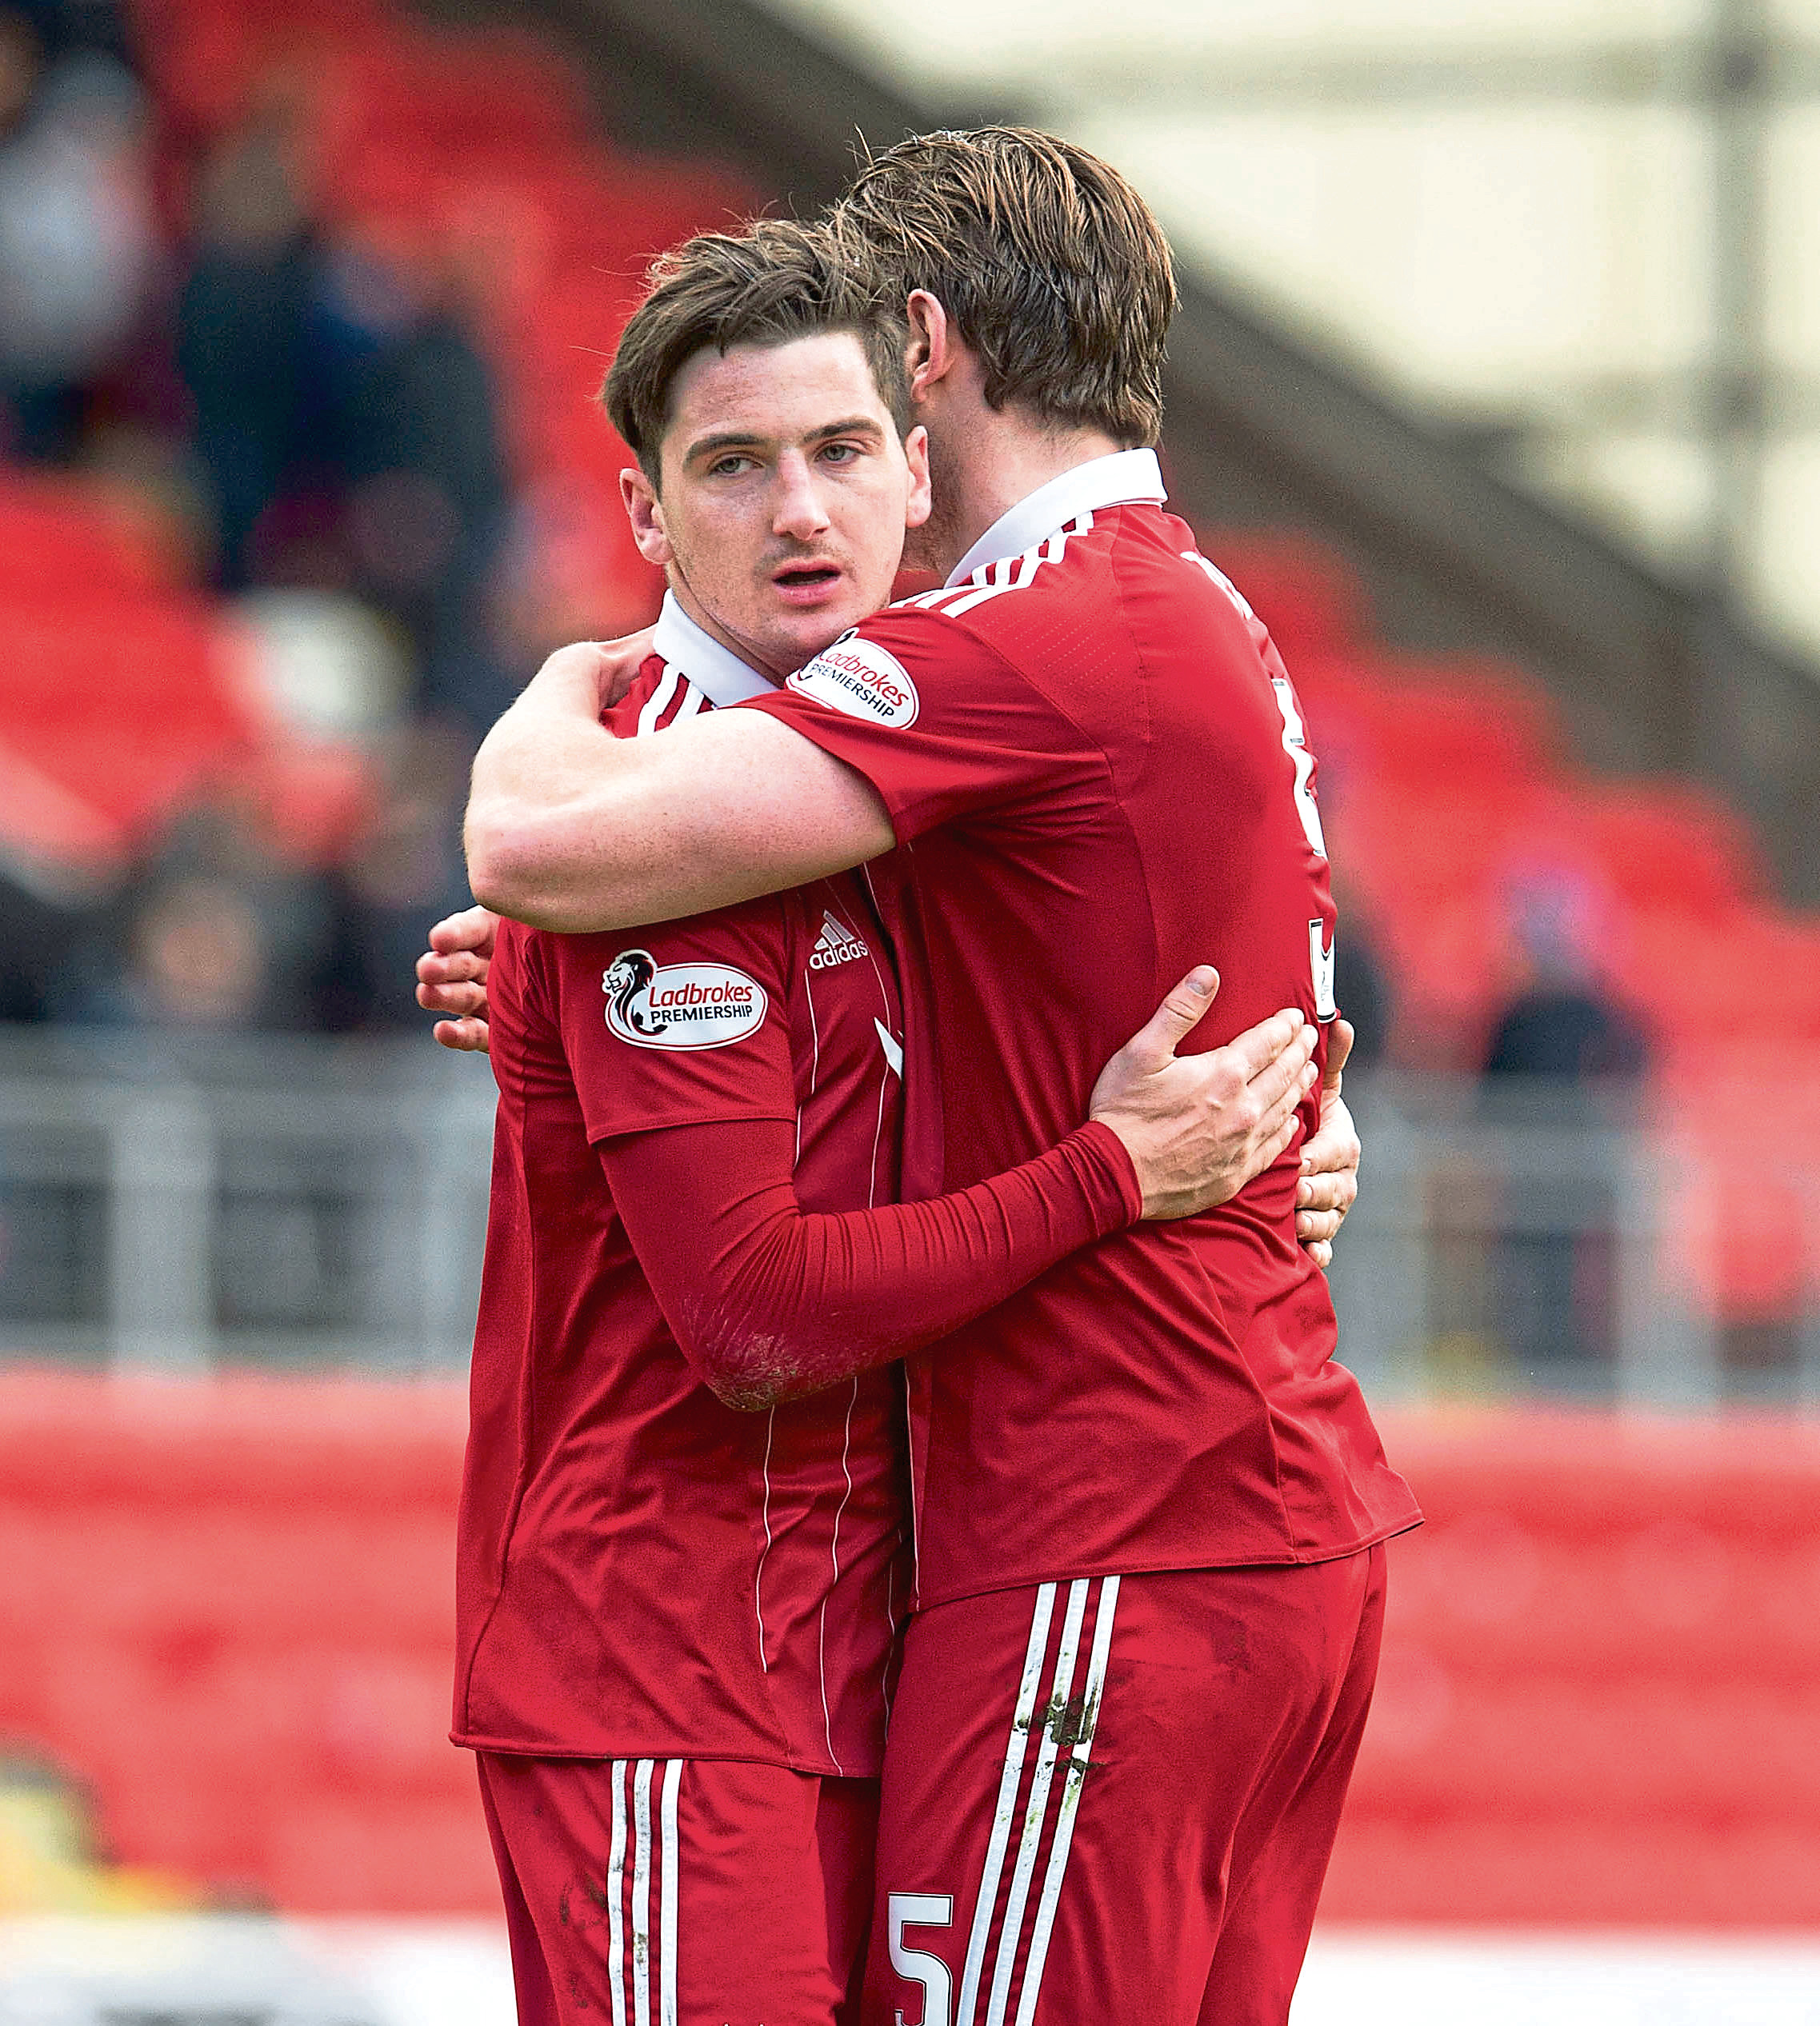 15/04/17 LADBROKES PREMIERSHIP ST JOHNSTONE V ABERDEEN (1-2)  McDIARMID PARK - PERTH  Aberdeen's Kenny McLean (L) celebrates with Ash Taylor at full-time.